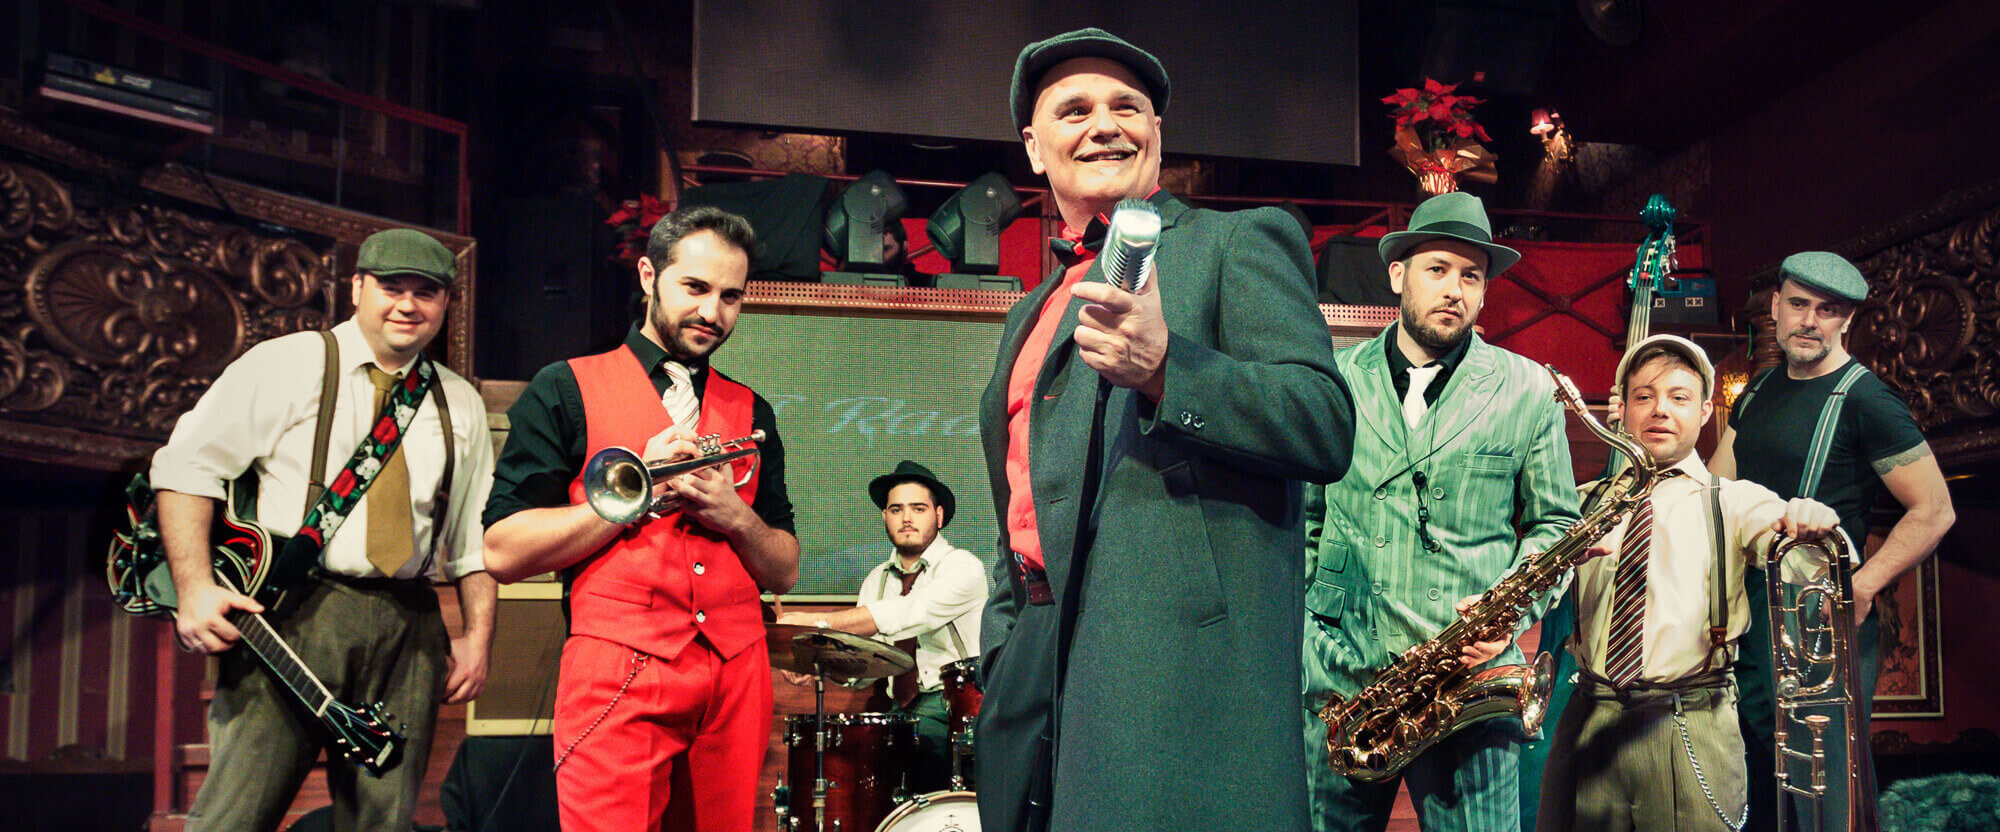 Troupers Swing Band.jpg